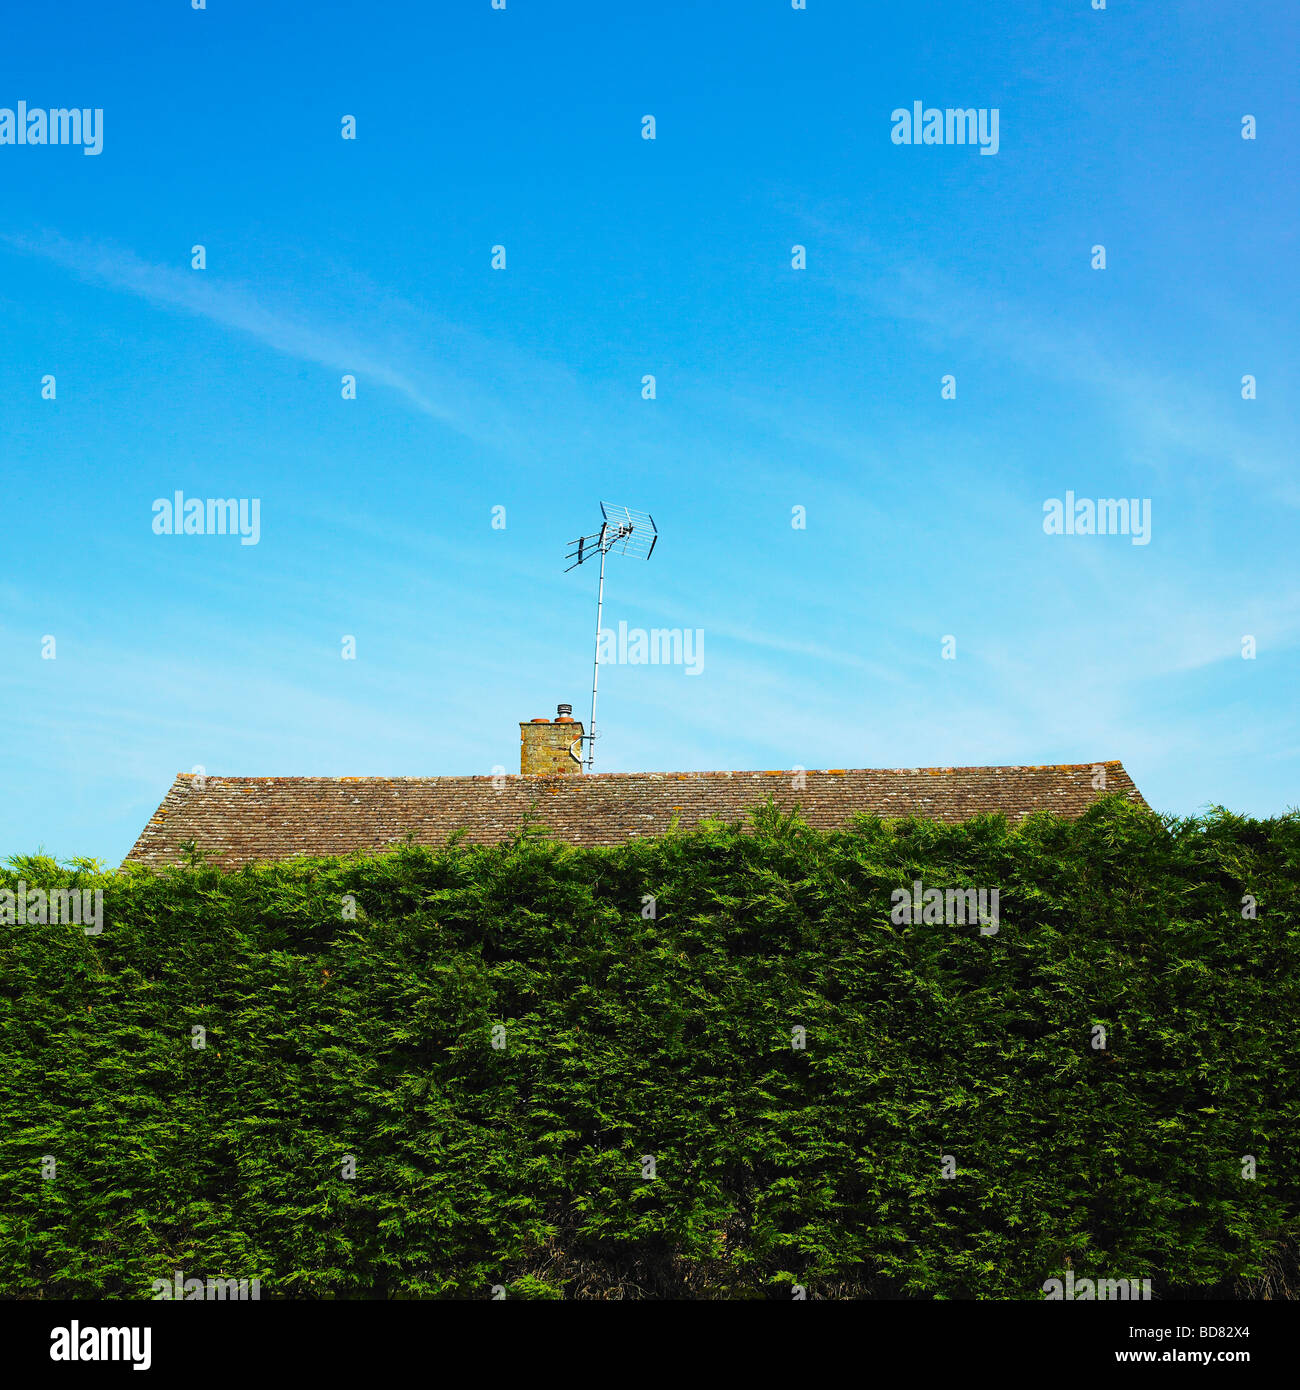 Roof top and TV aerial hidden behind a high hedge. - Stock Image